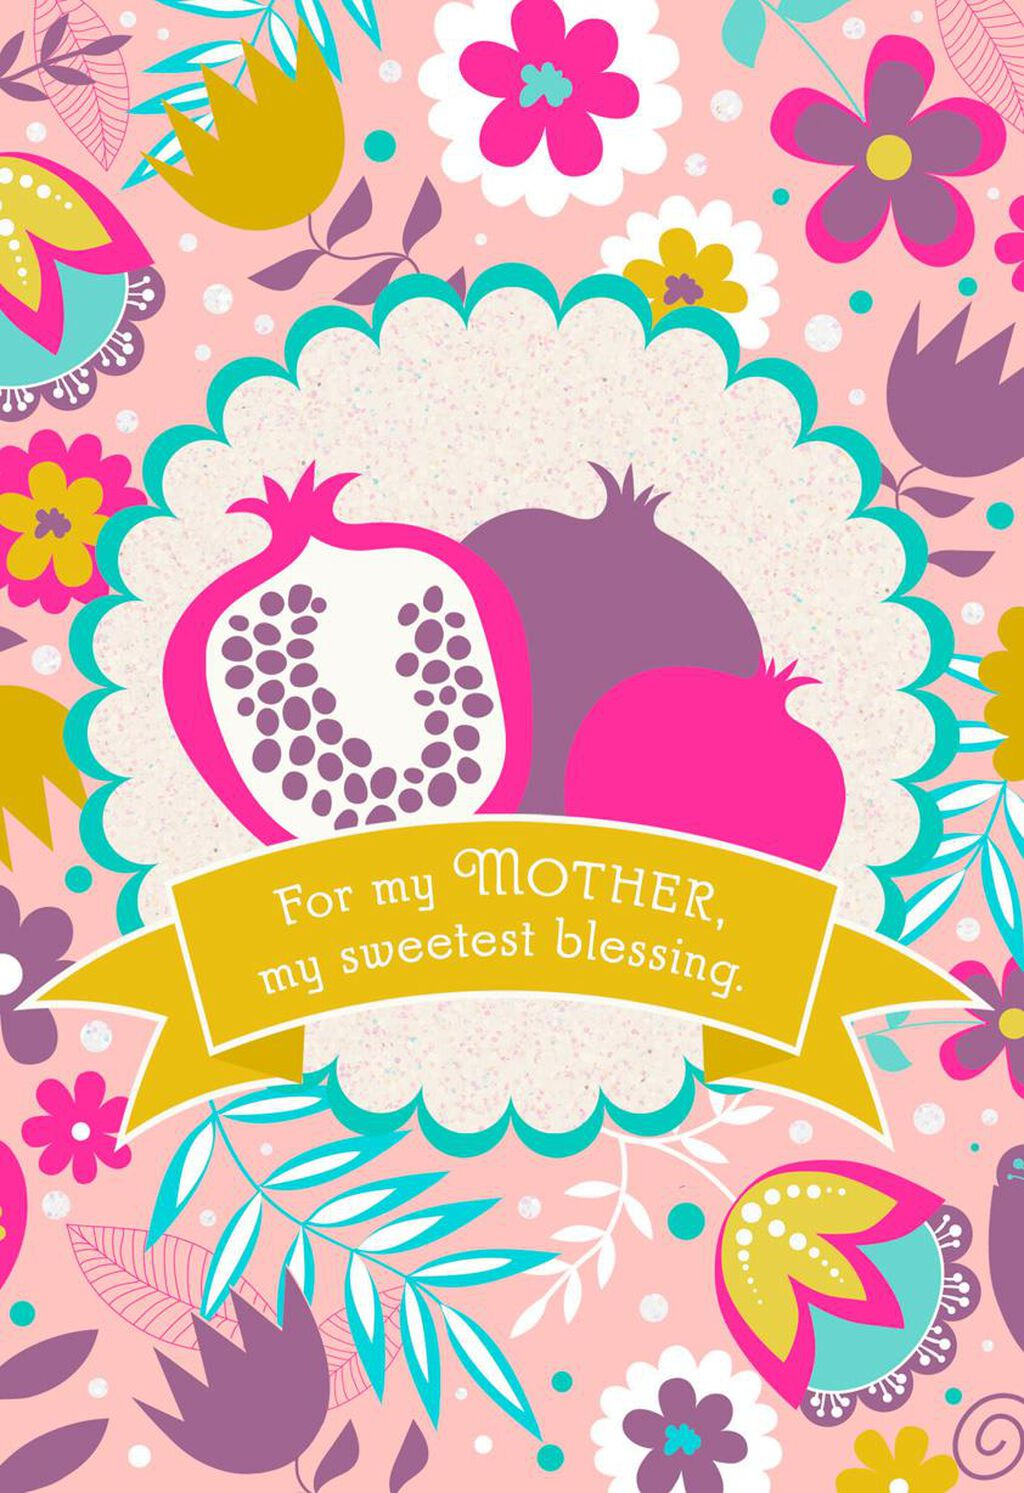 My Sweetest Blessing Rosh Hashanah Card For Mom Greeting Cards